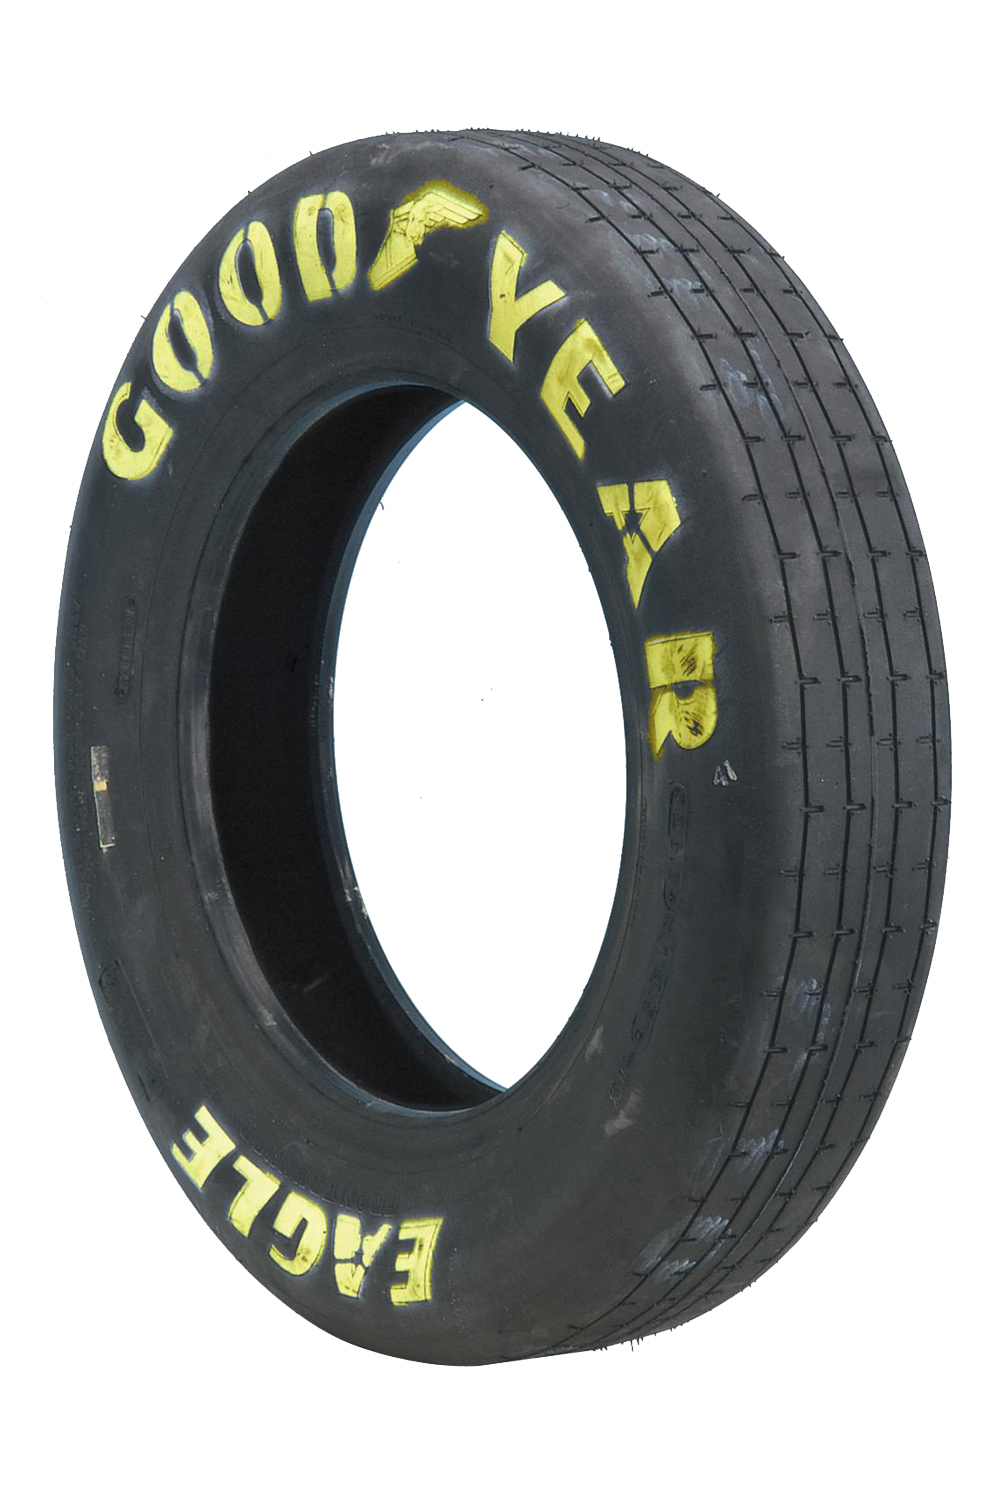 Goodyear D1966 Tire, Drag Front, Front Runner, 28.0 x 4.5-15, Bias Ply, Hard Compound, Yellow Letter Sidewall, Each